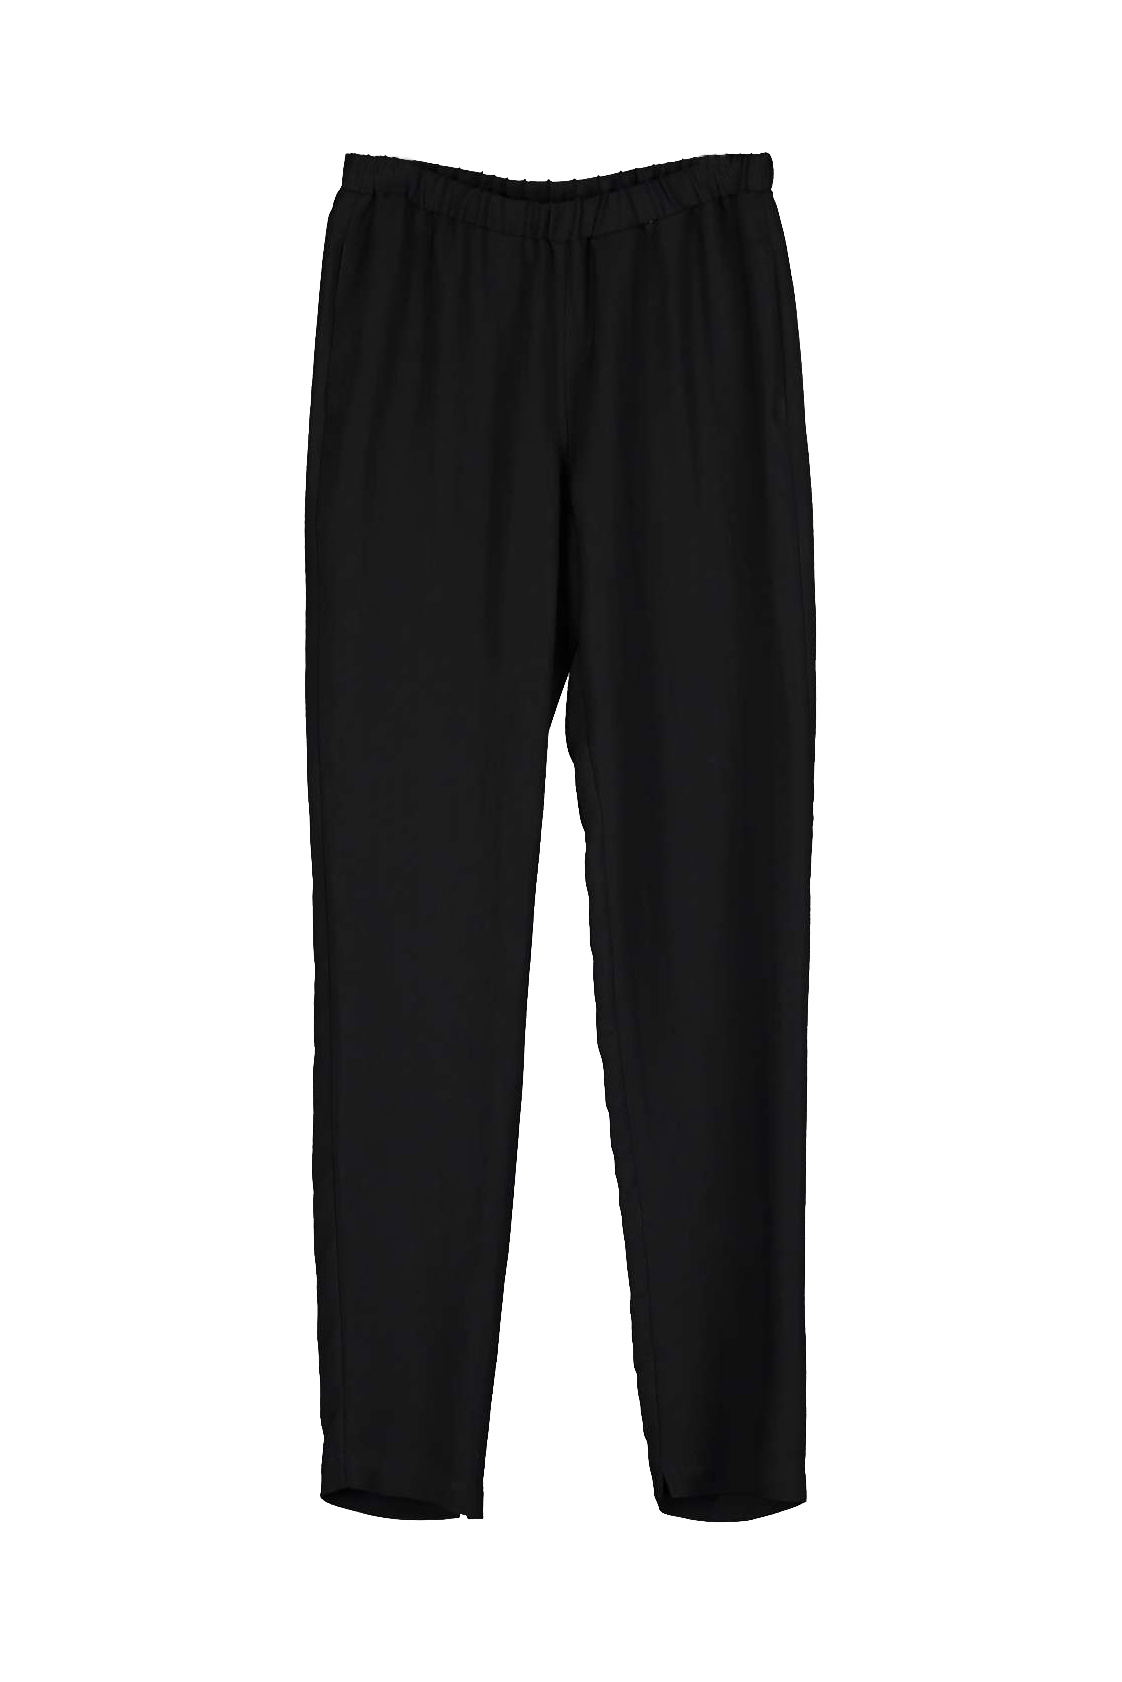 Boaz Trouser - Blackish-1